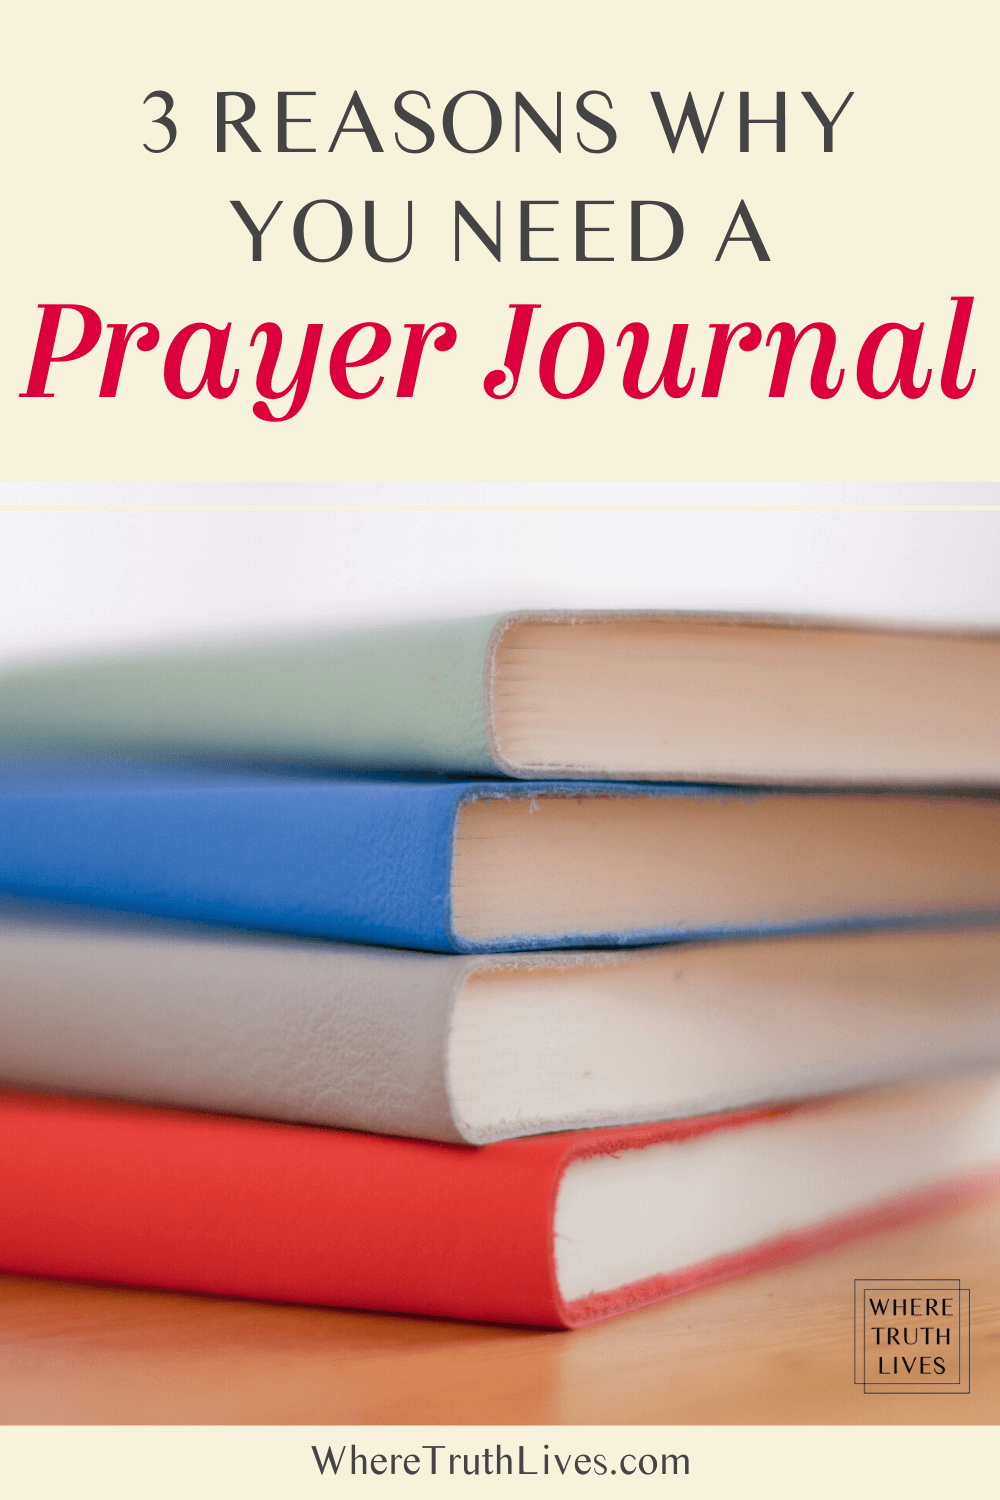 3 Reasons Why You Need a Prayer Journal